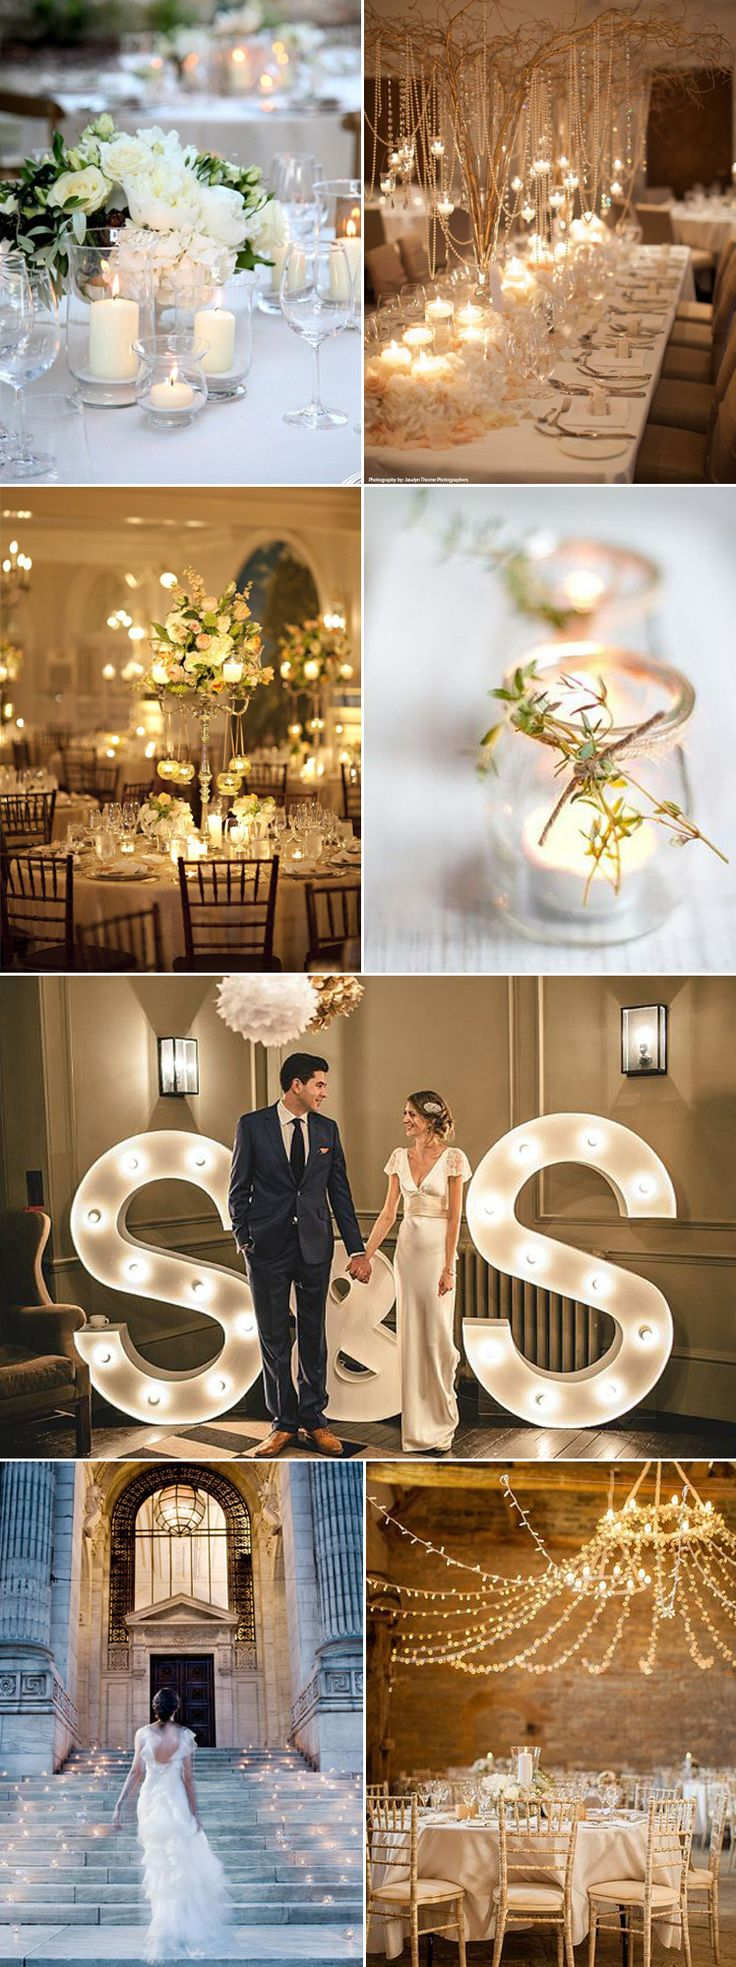 Beautiful ideas to light up your wedding